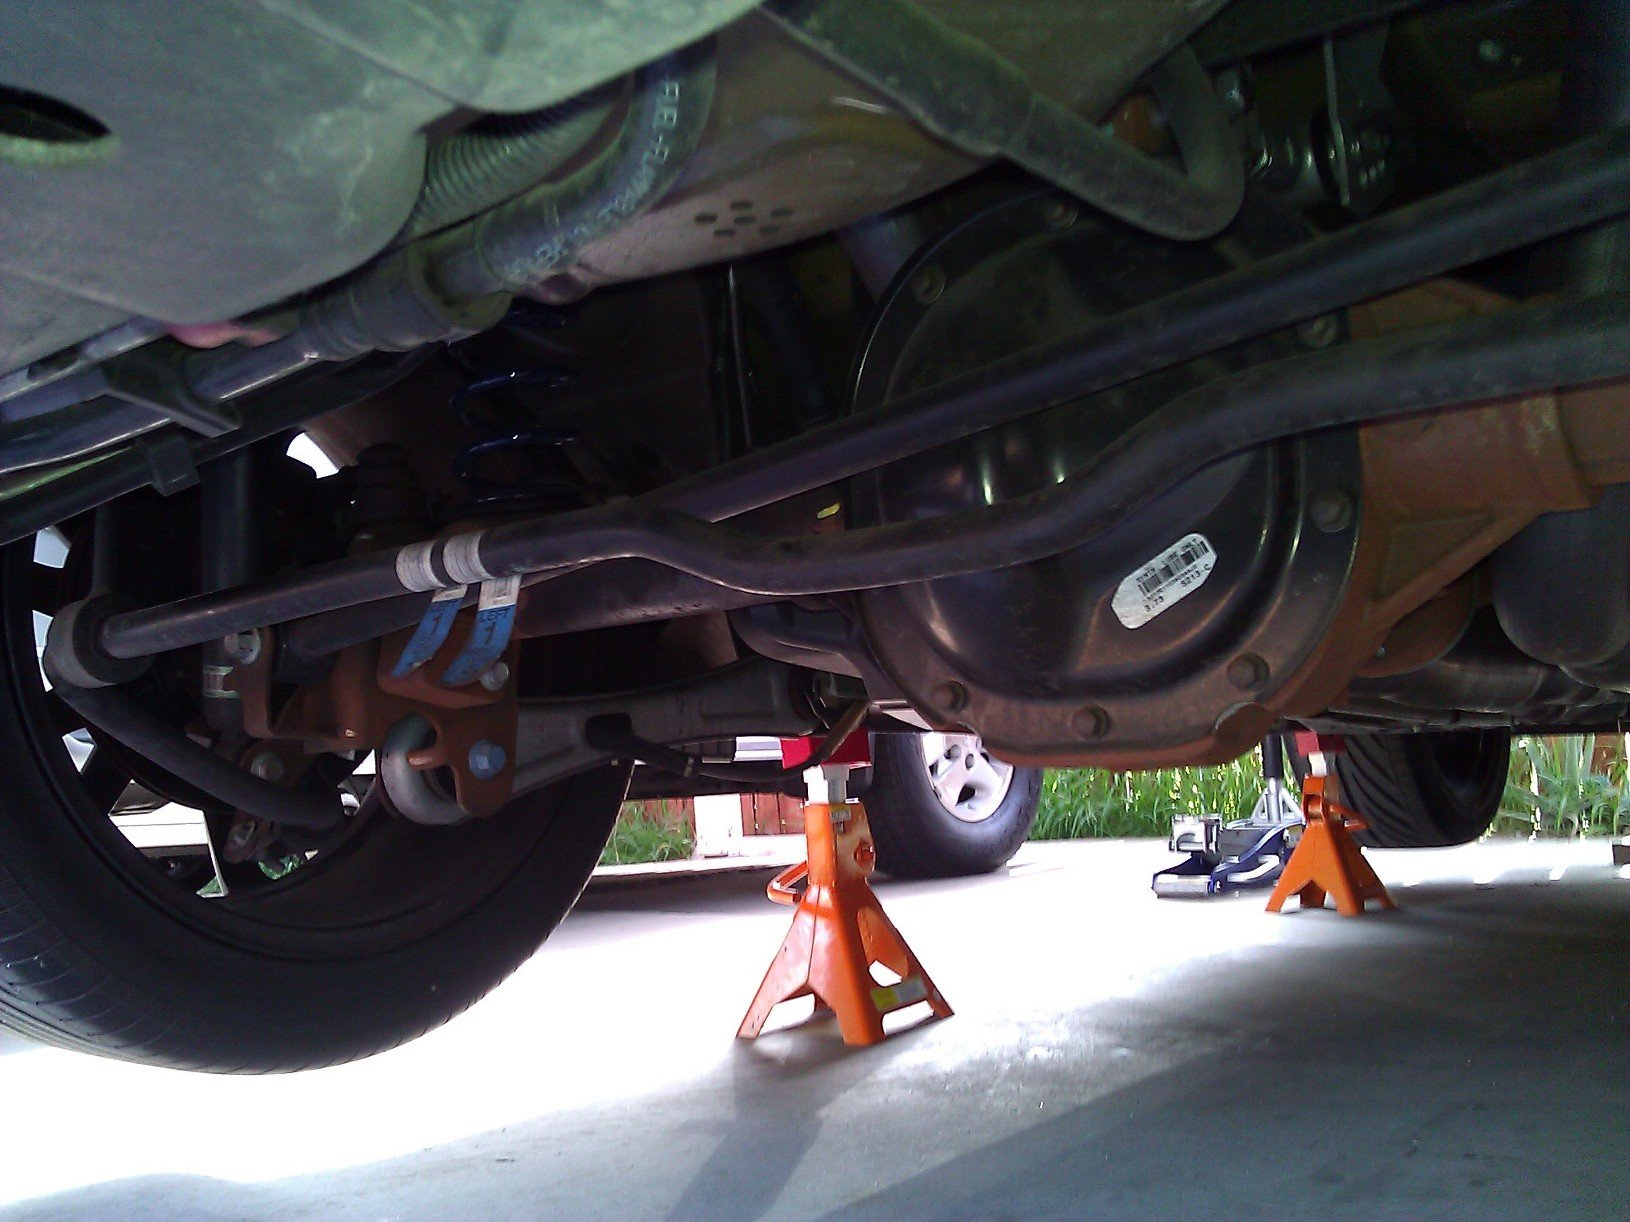 Front Sway Bar >> Whiteline Flatout Rear Sway Bar Installation - Ford Mustang Forum